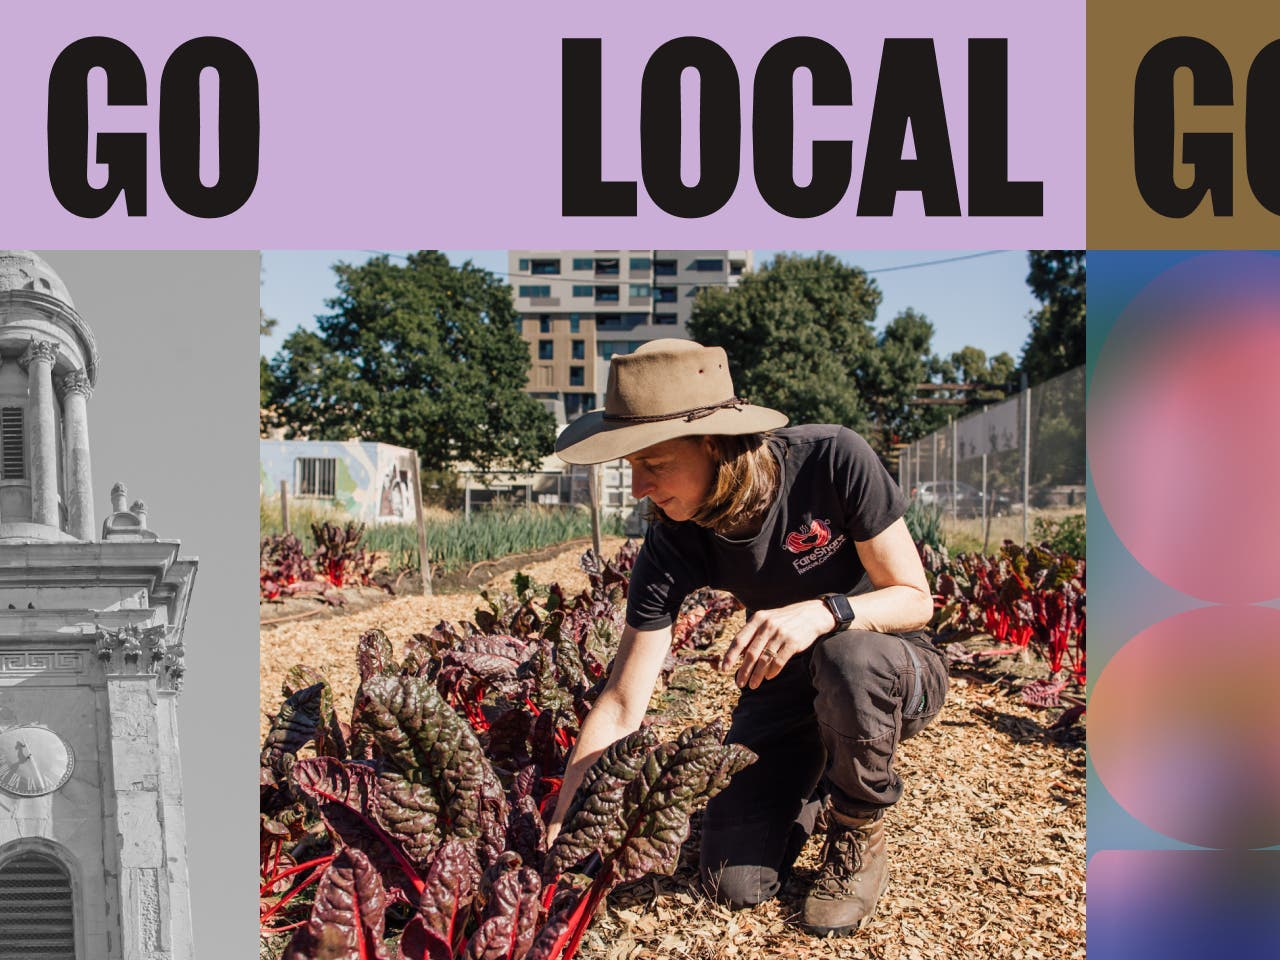 A jargon of images labeled 'Go Local' that are stories from the neighborhood.